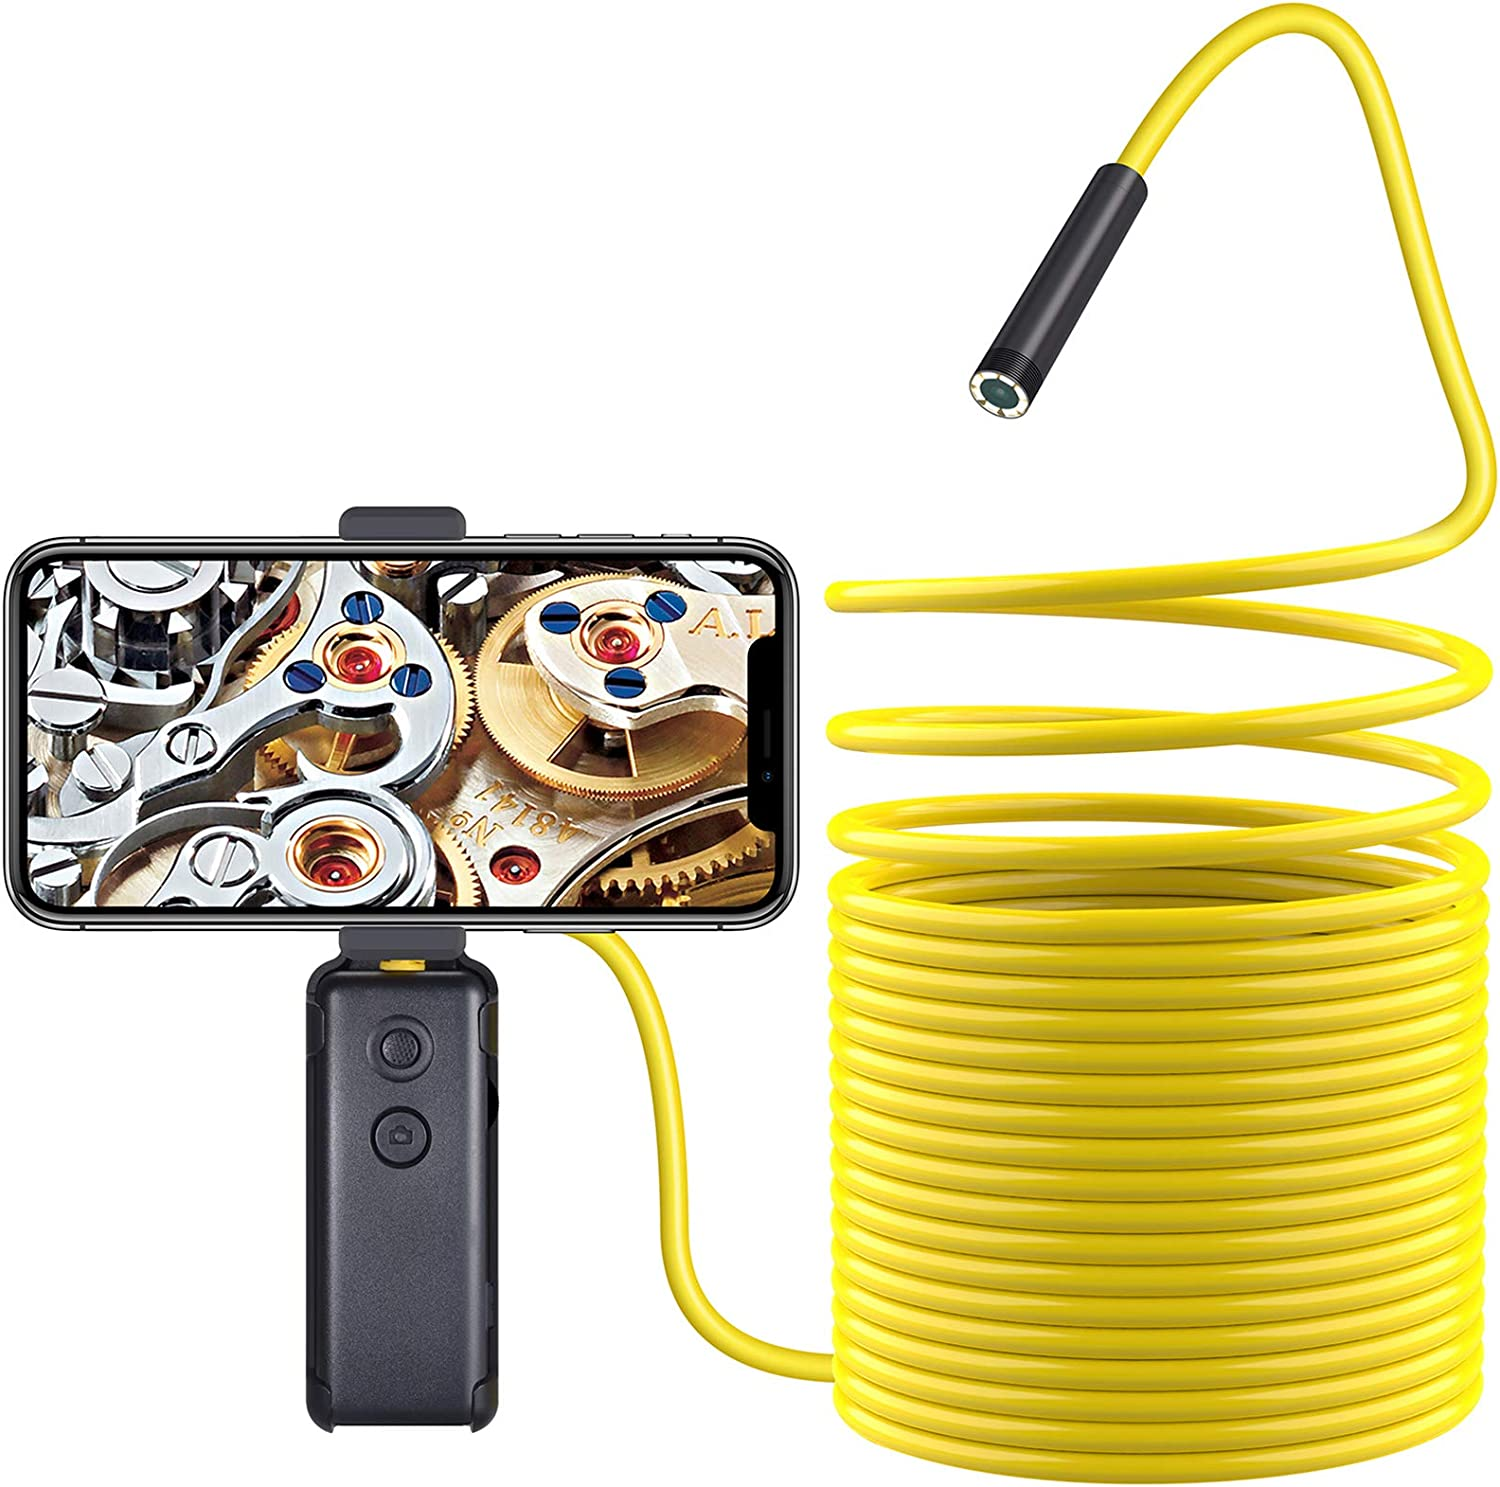 Wireless Endoscope,TurnRaise Upgrade Semi-Rigid Flexible WiFi Borescope Inspection Camera with IP67 Waterproof 2MP HD Borescope Inspection Snake Camera FIt iOS Smartphone,Samsung, iPad, Table((16.4FT)